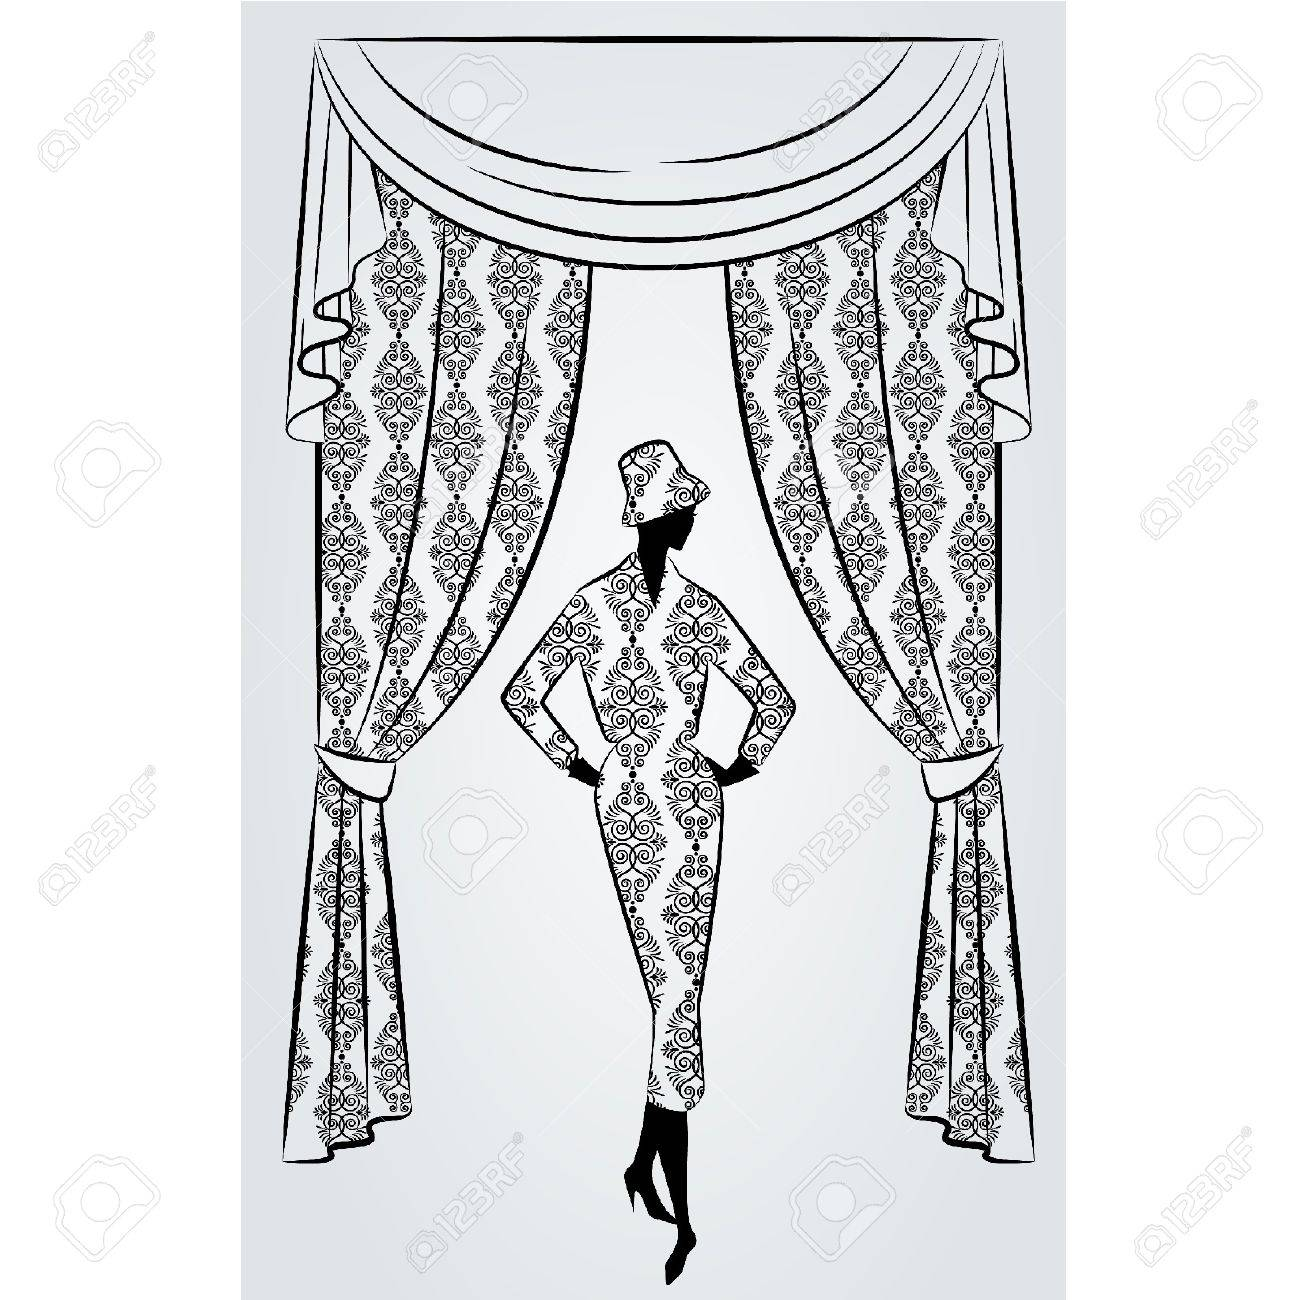 Black Lace Curtains Vintage - Lace curtains vintage curtain with silhouette of girls